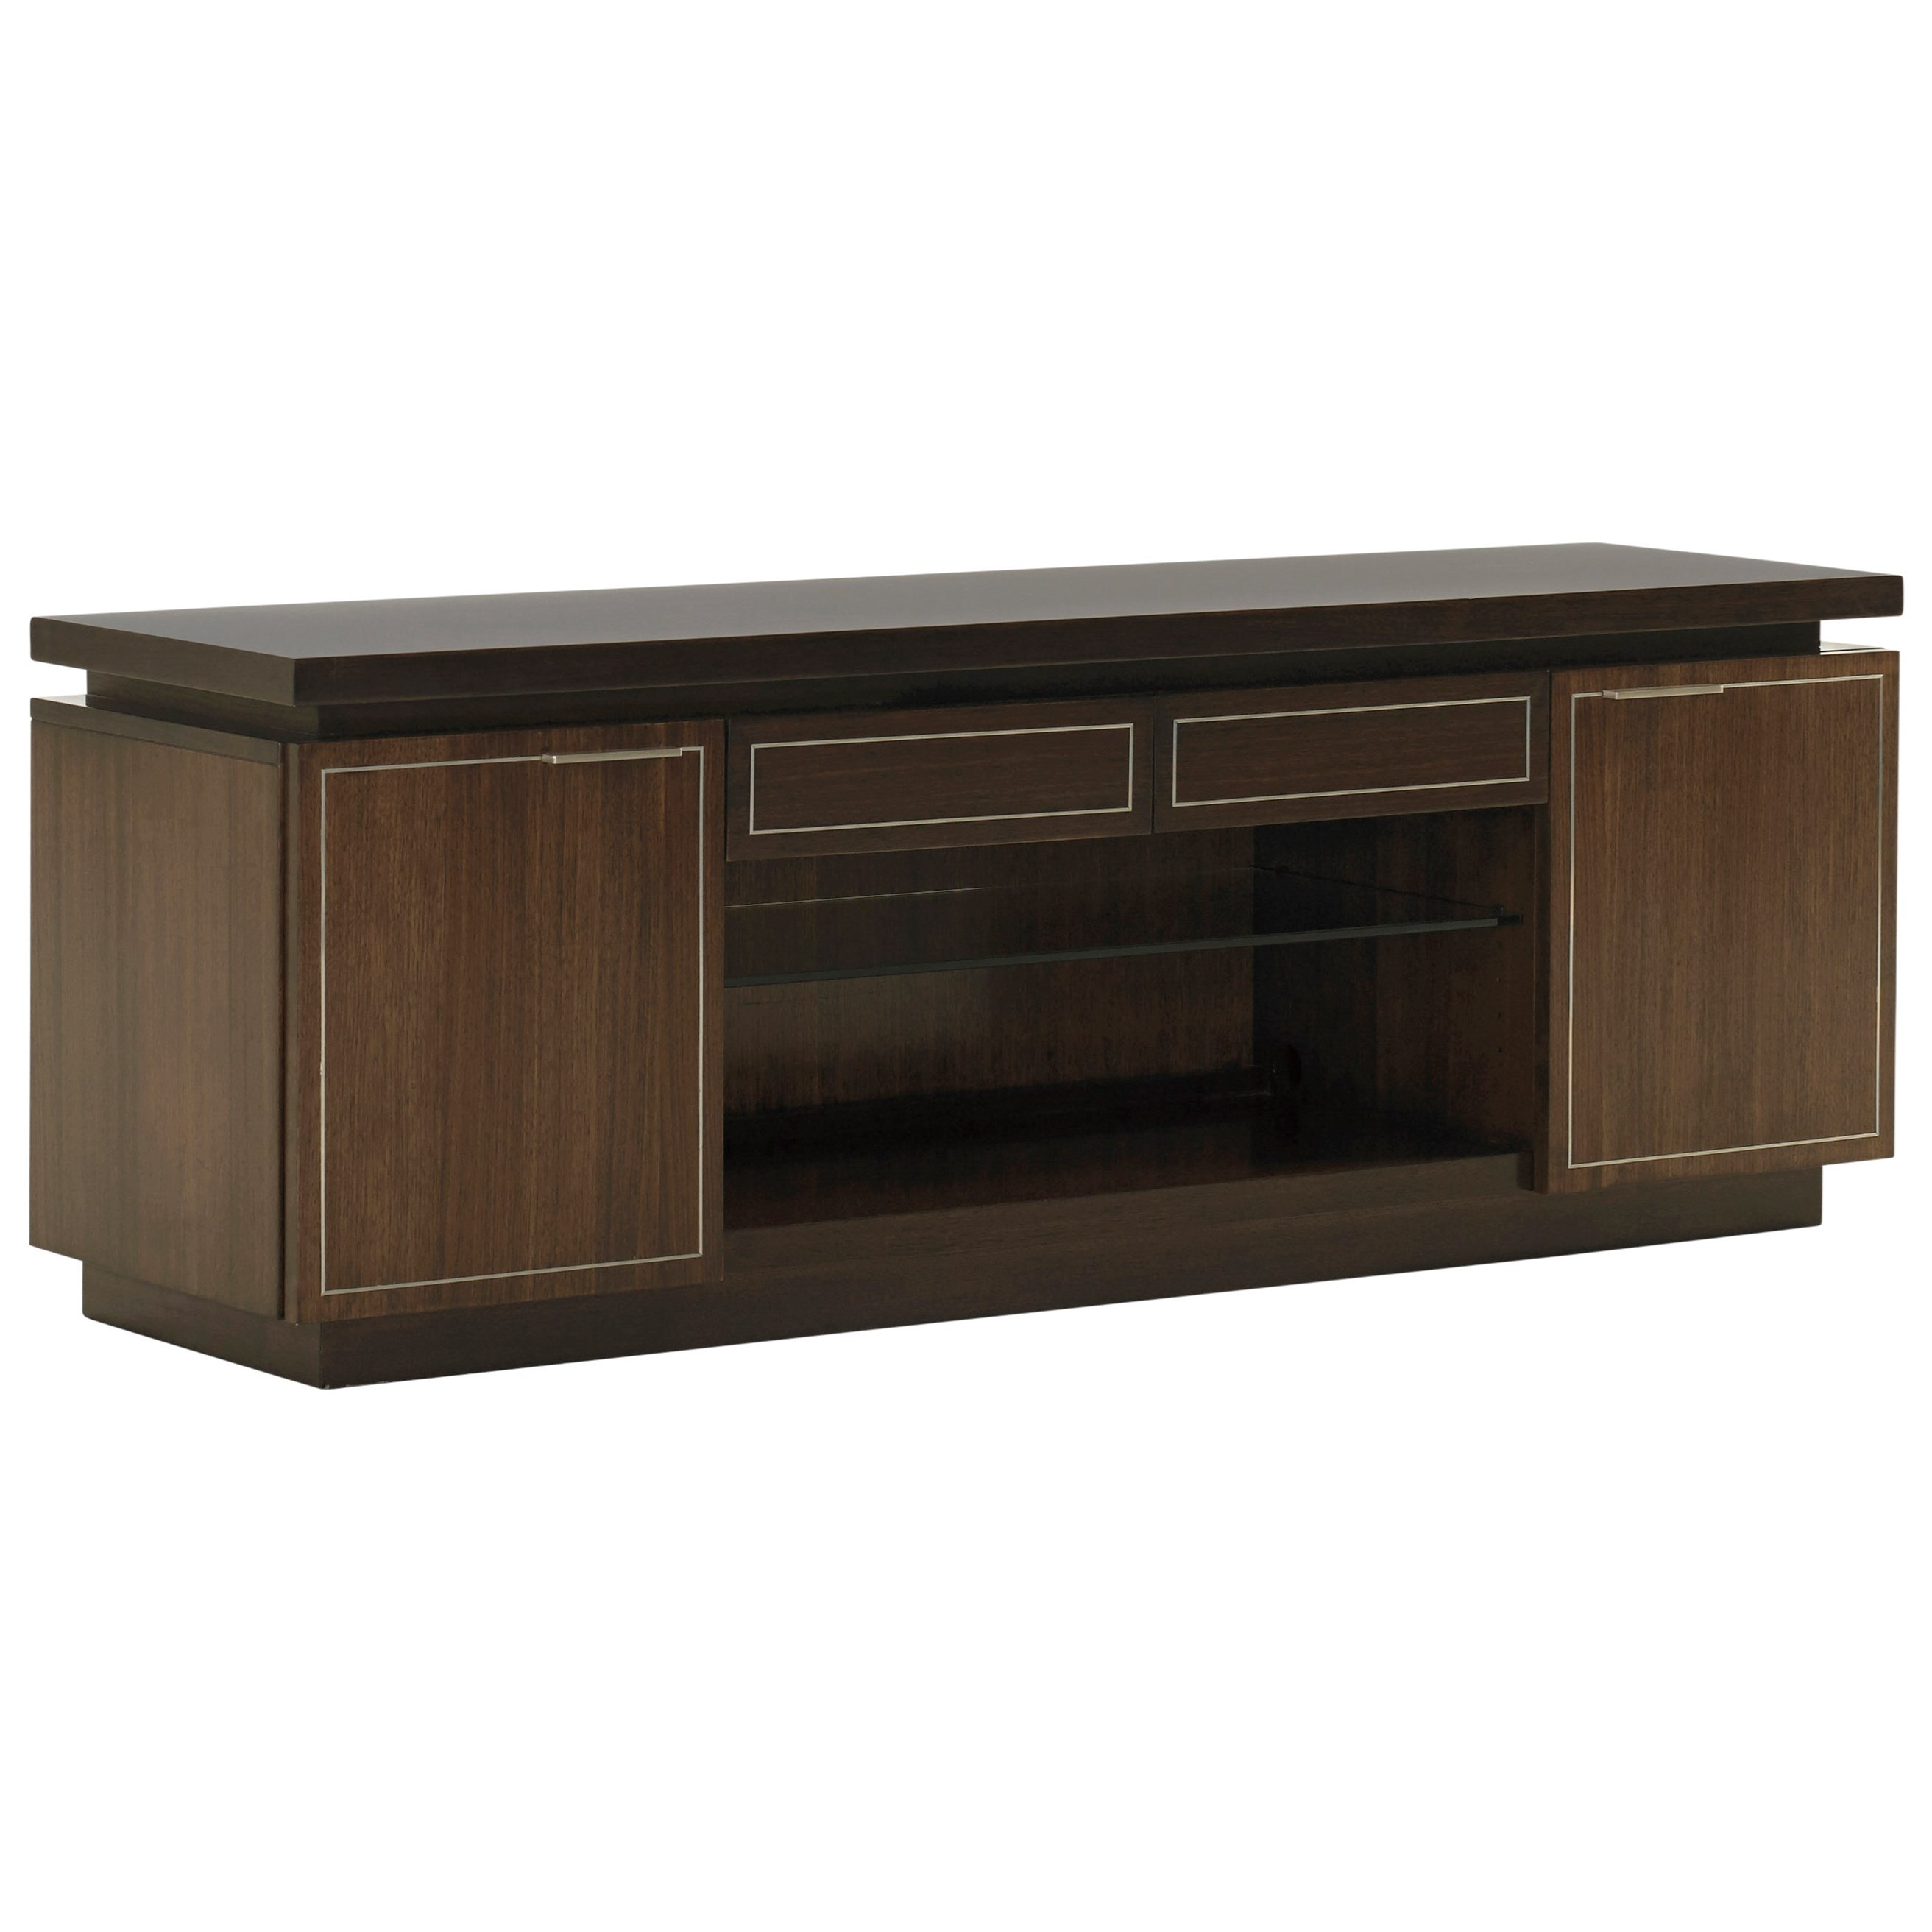 MacArthur Park Highview Media Console by Lexington at Johnny Janosik